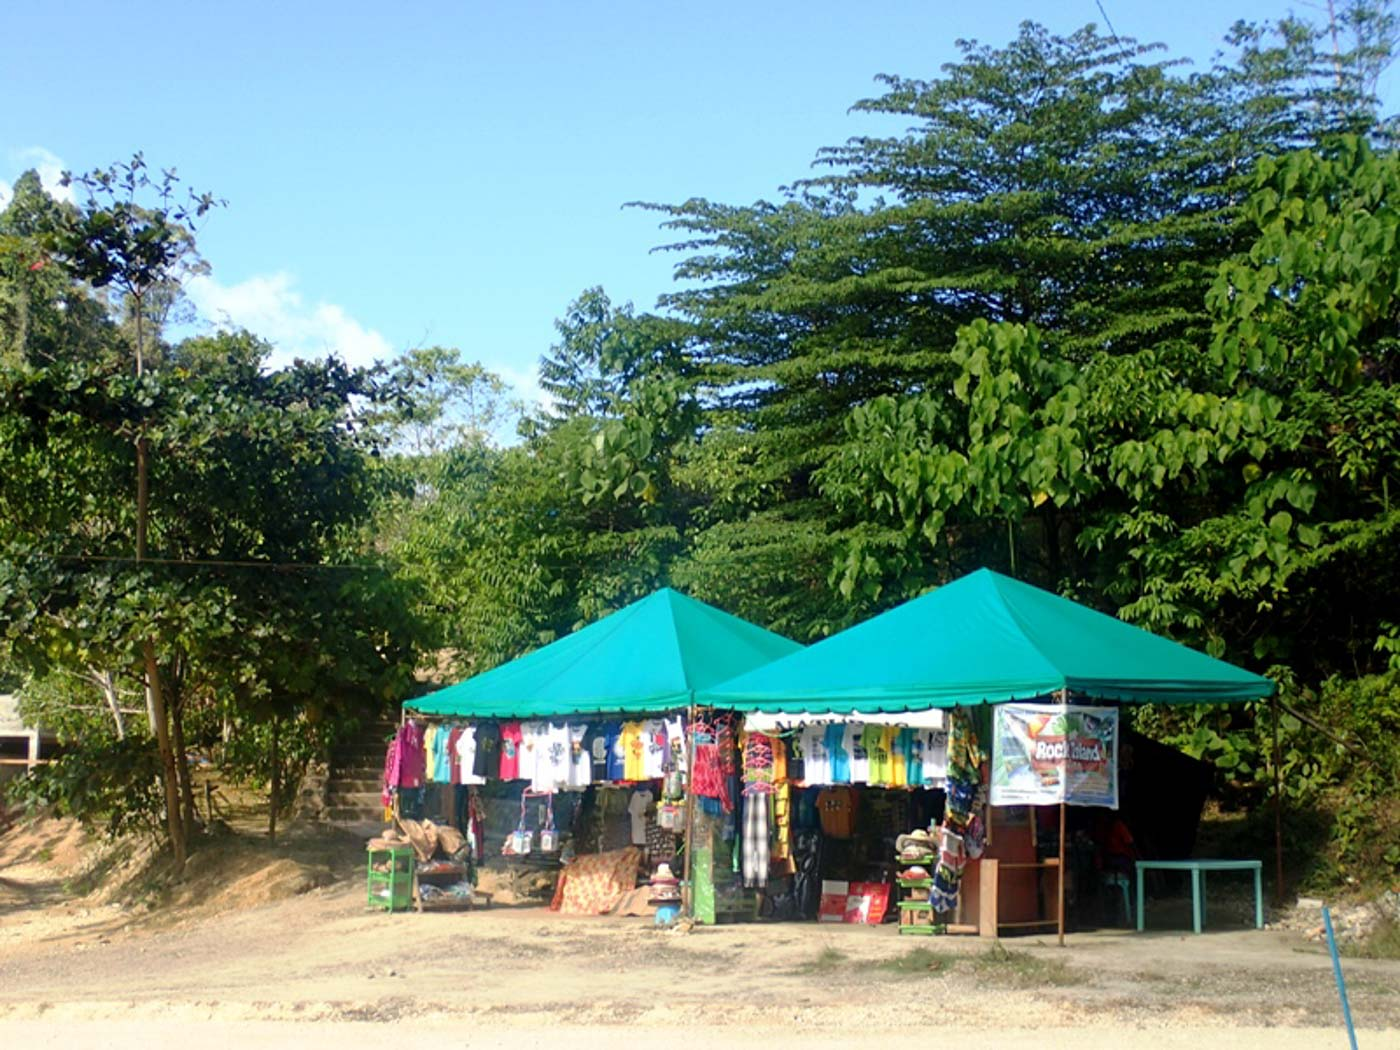 NEW AREA.  NEW AREA. During the riveru2019s closure, facilities like the souvenir stalls pictured here were moved to this new, more spacious area over 300 meters away from the river.